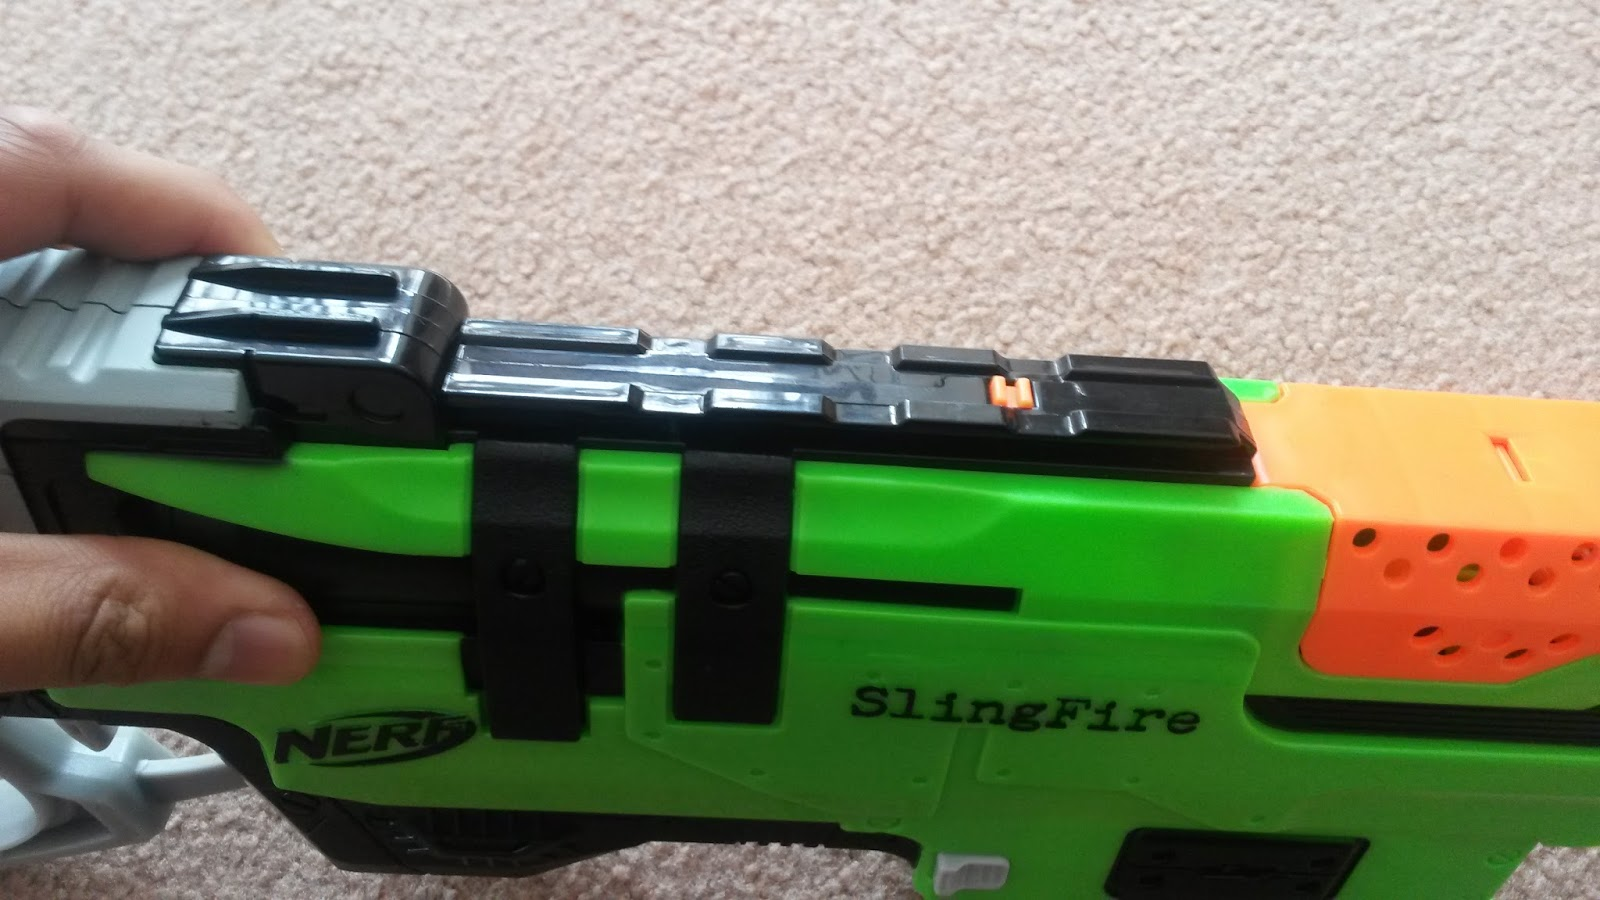 What Time Does Outback Open >> Outback Nerf: Review: Nerf Zombie Strike Slingfire (Aus grey trigger, black breech)